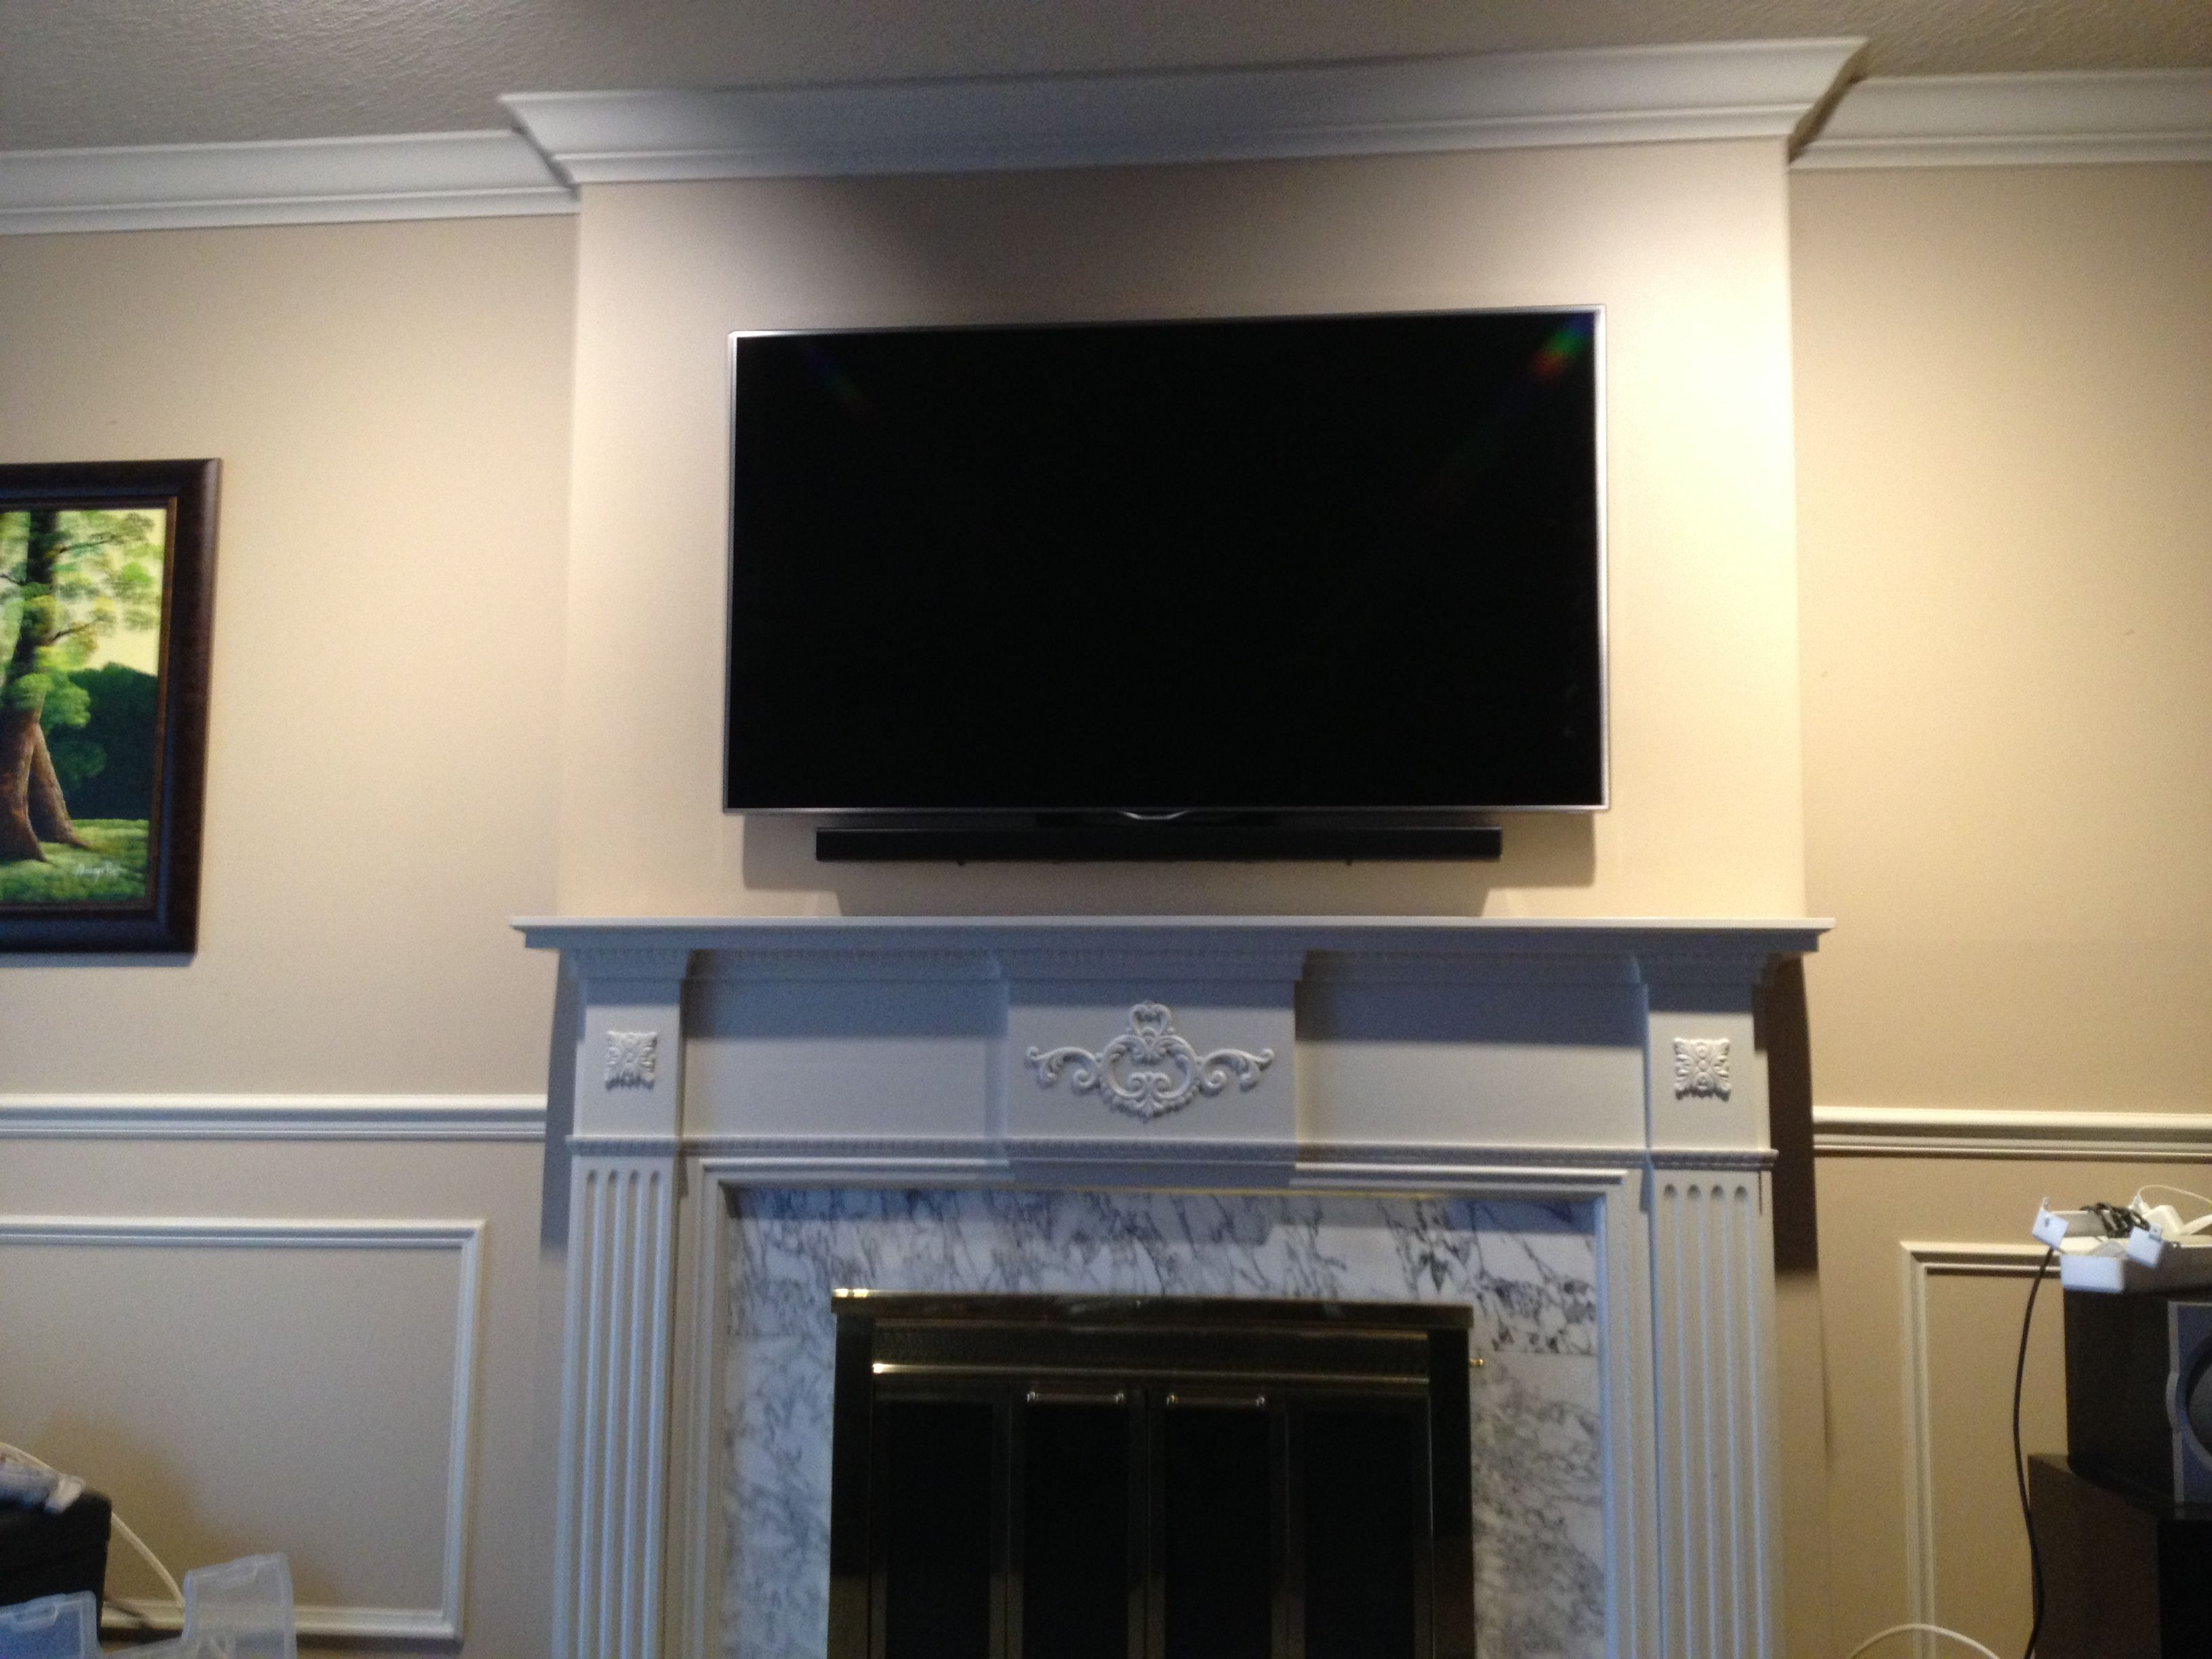 Sound Bar Installed Below The Tv Using Sound Bar Brackets Attached